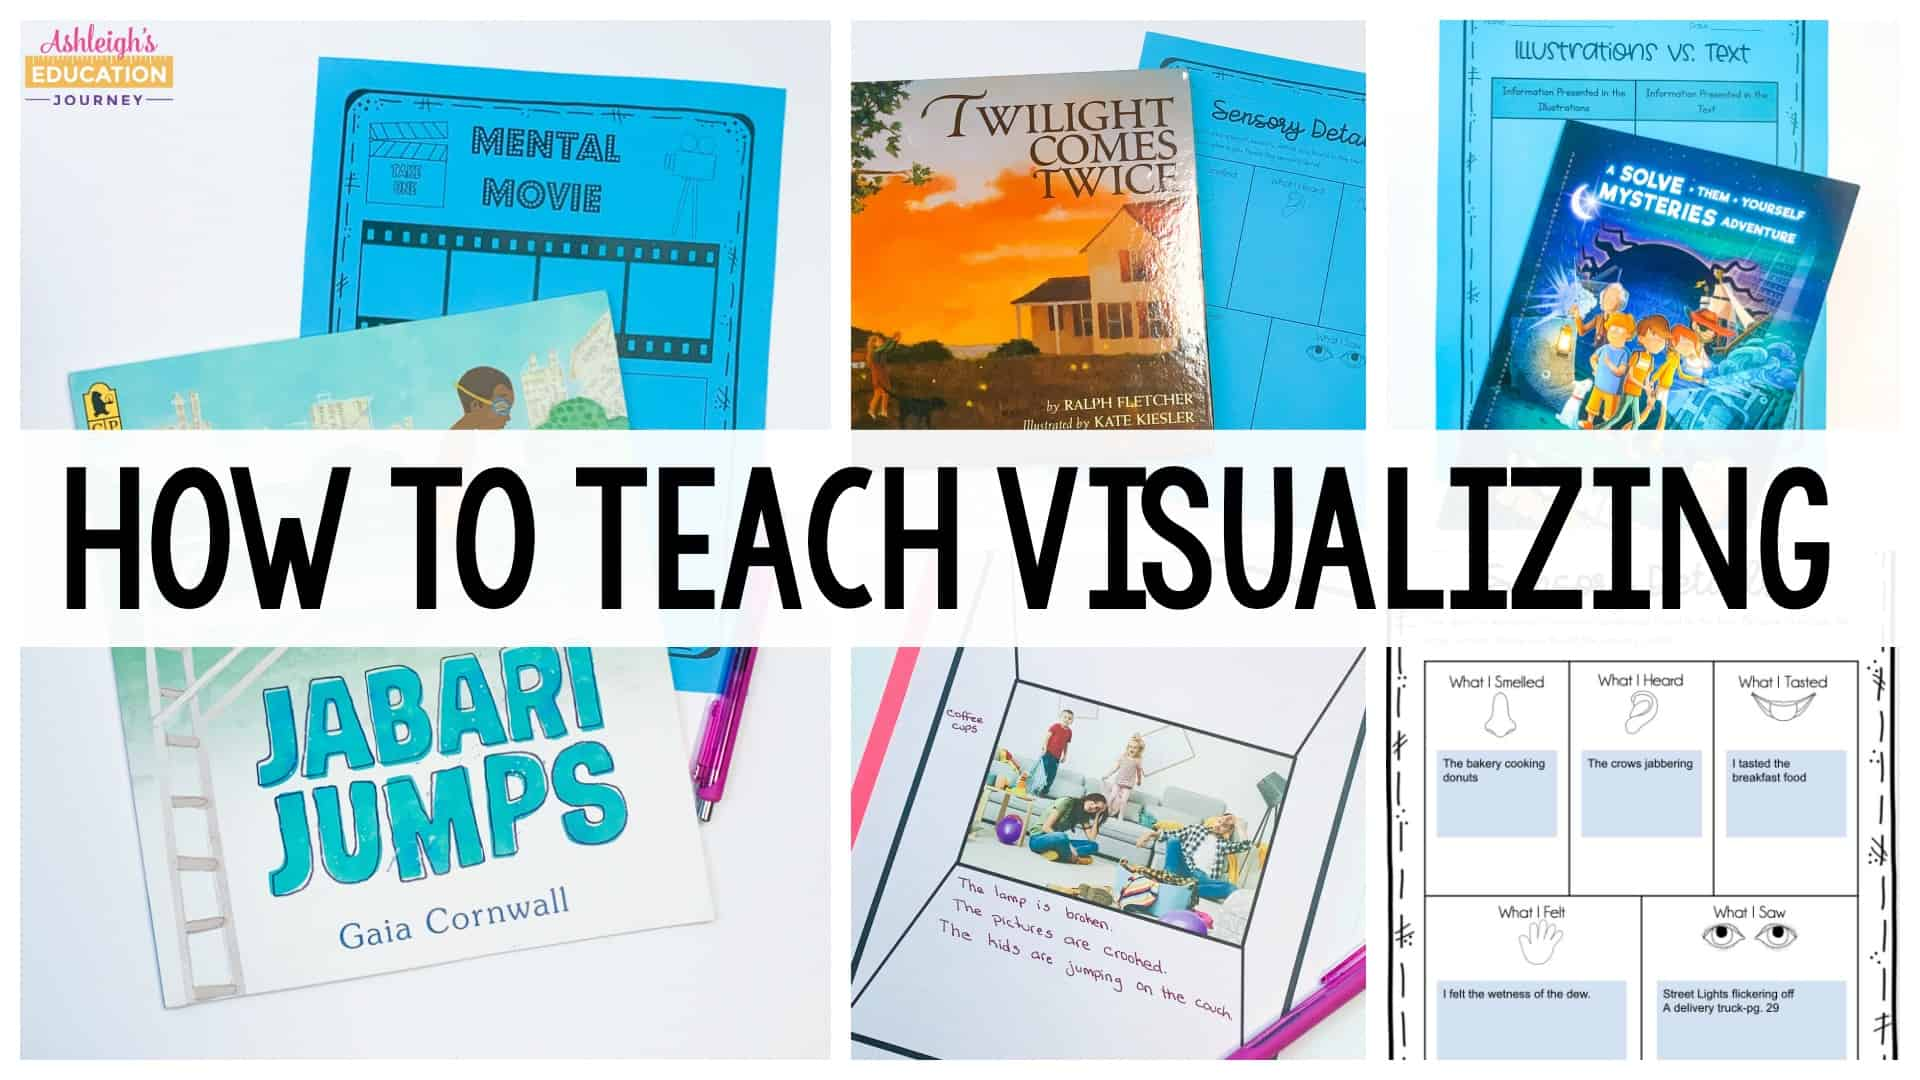 hight resolution of Visualizing During Reading - Ashleigh's Education Journey